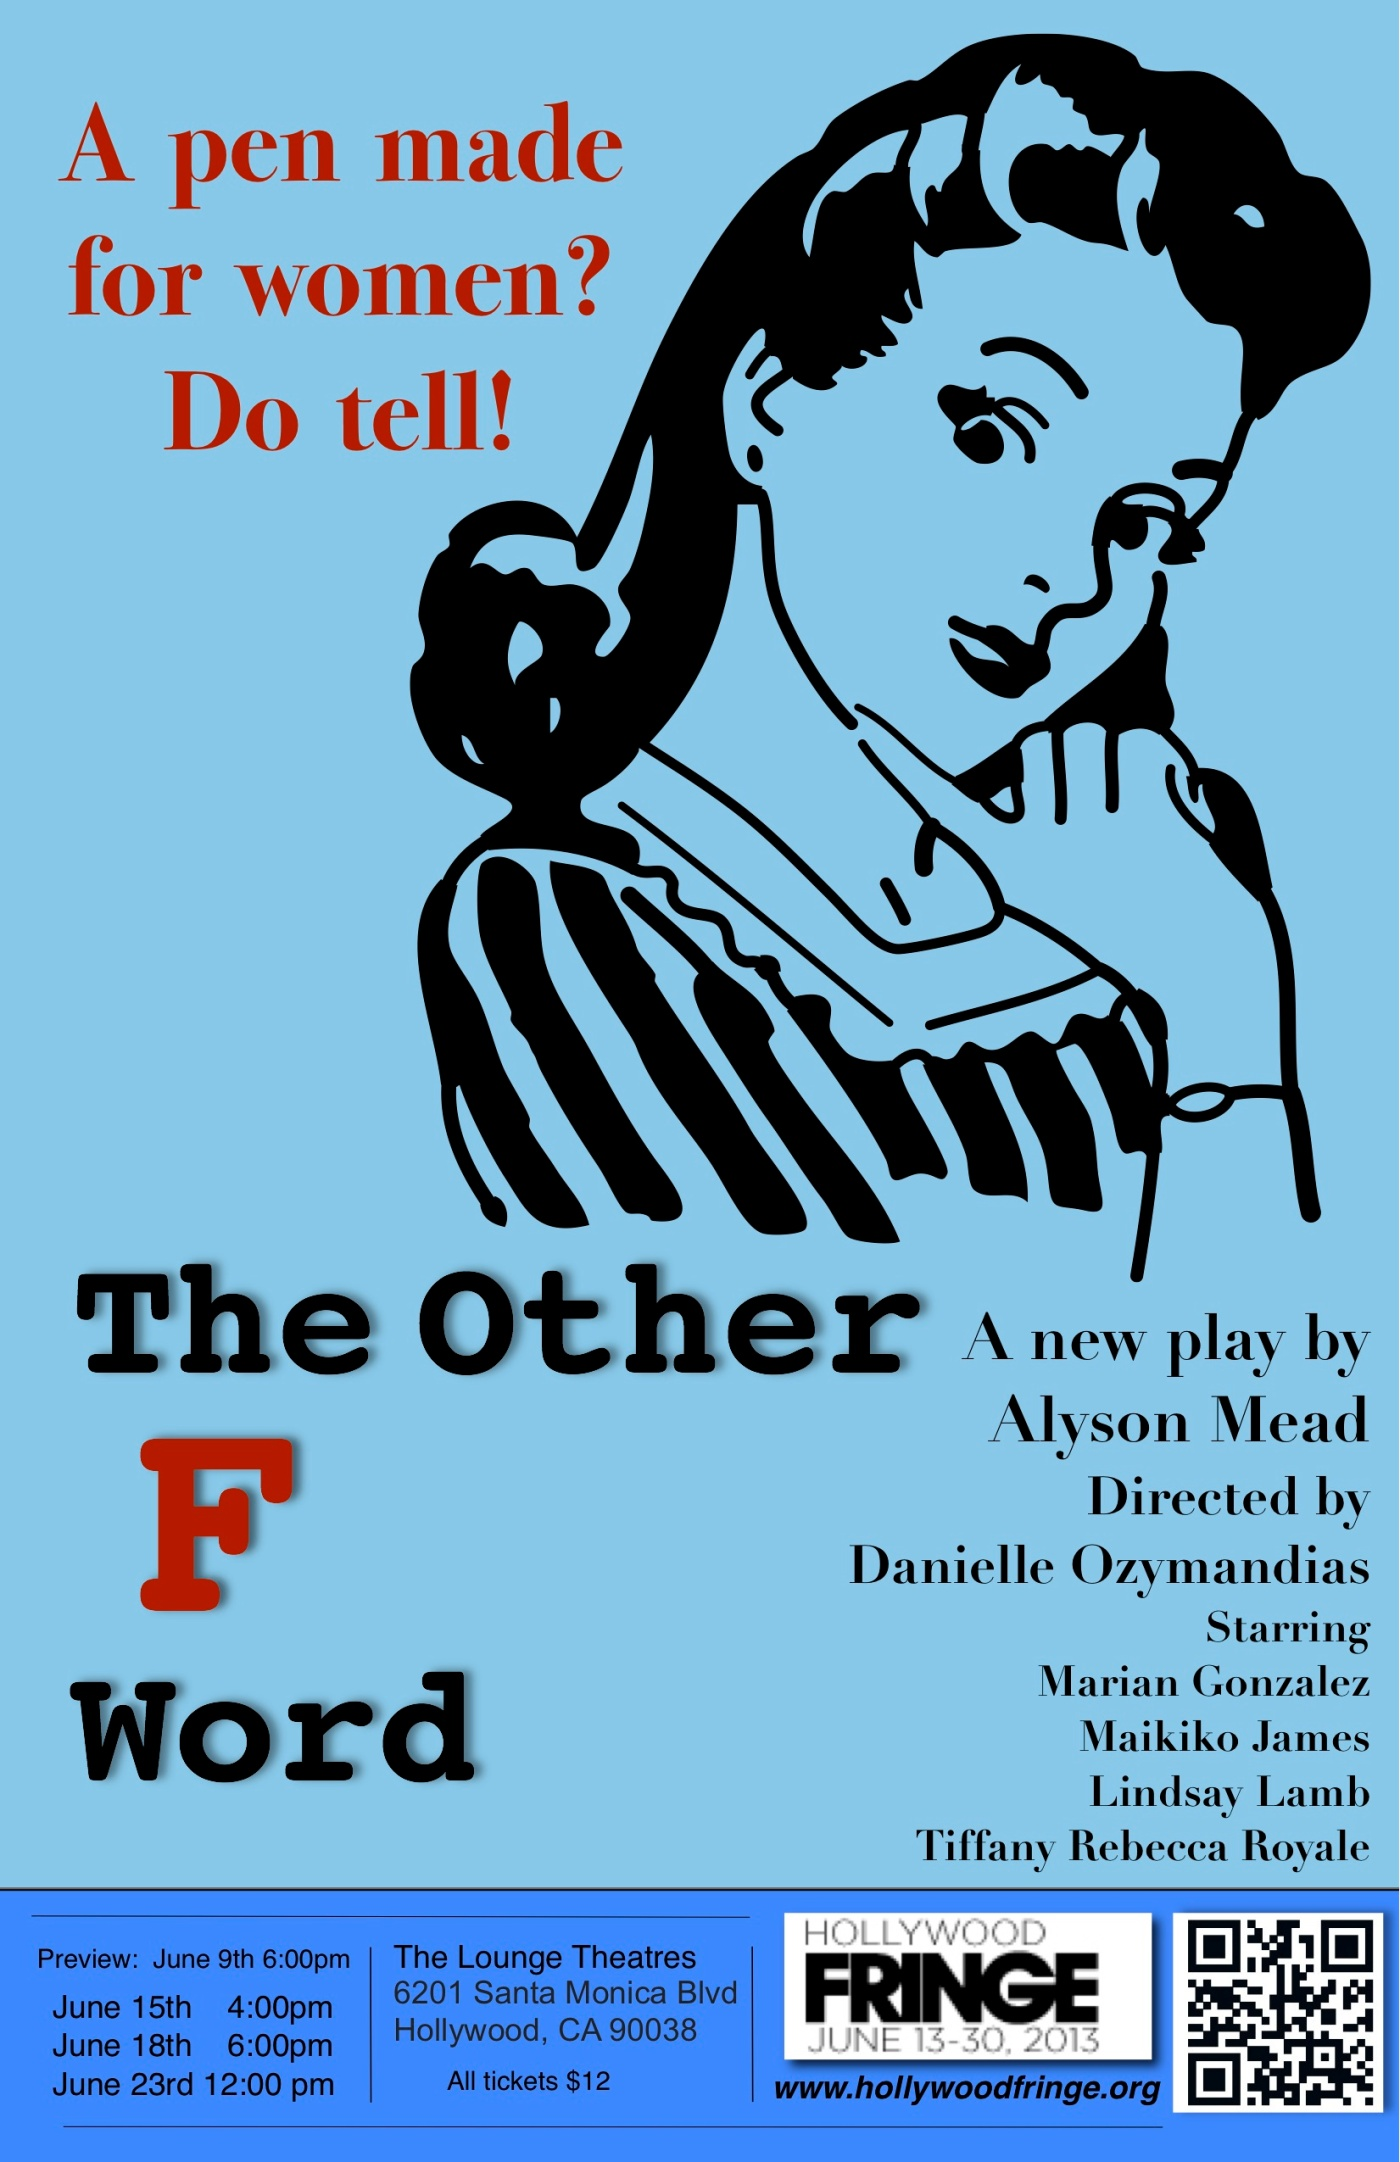 The Other F word, Gia, Gia On The Move, theatre, reviews, theater, women, marketing